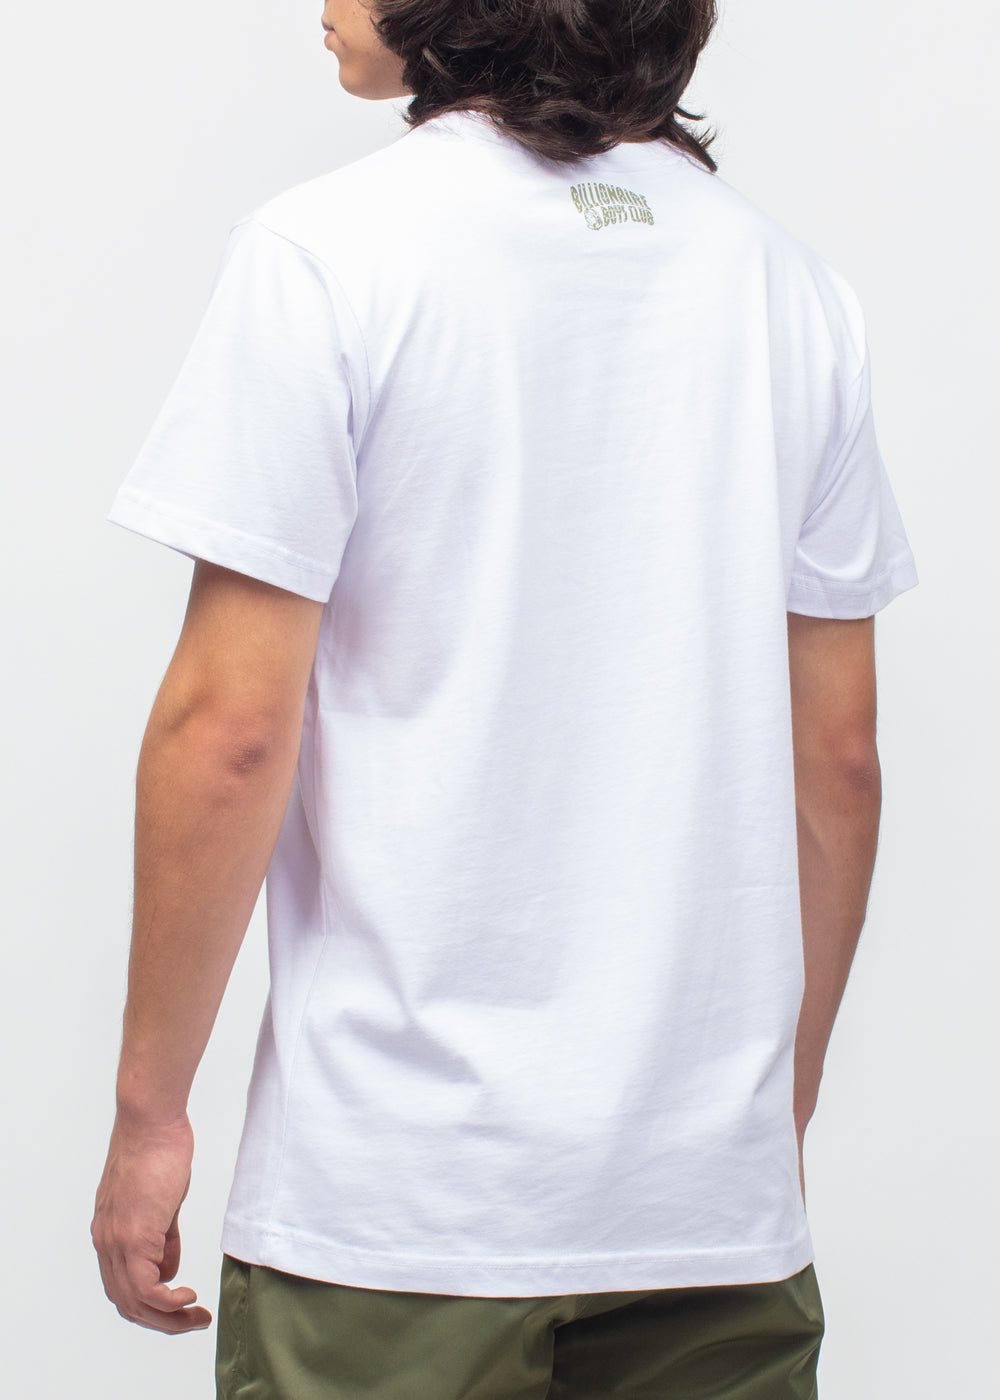 billionaire-boys-club-visitor-ss-tee-891-6204-wht-wht-3